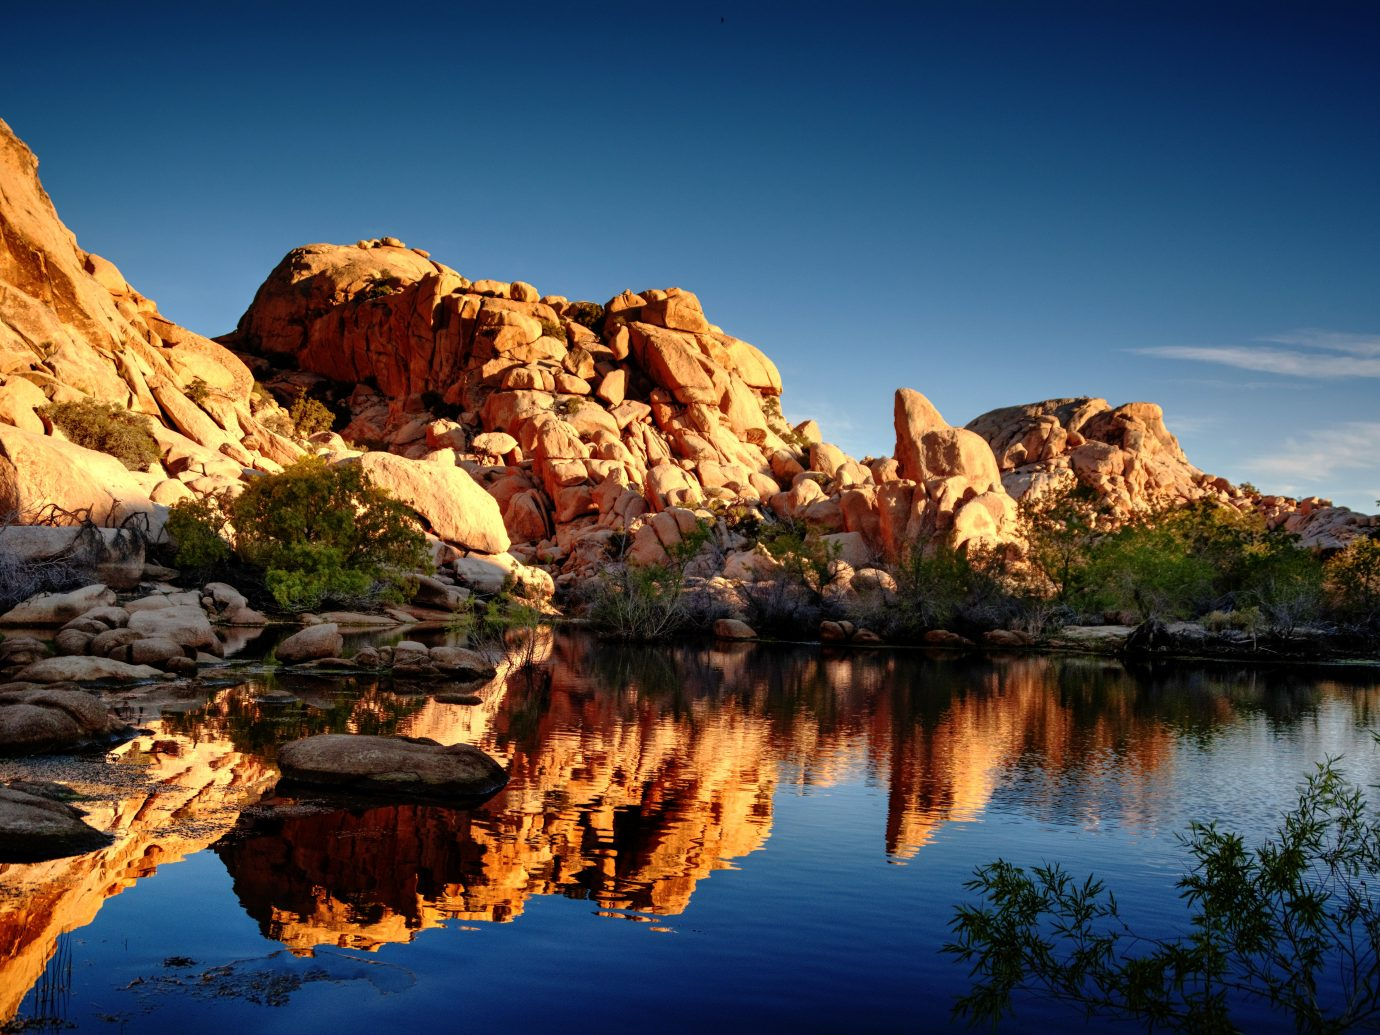 Early morning reflection at Barker Dam in Joshua Tree National Park